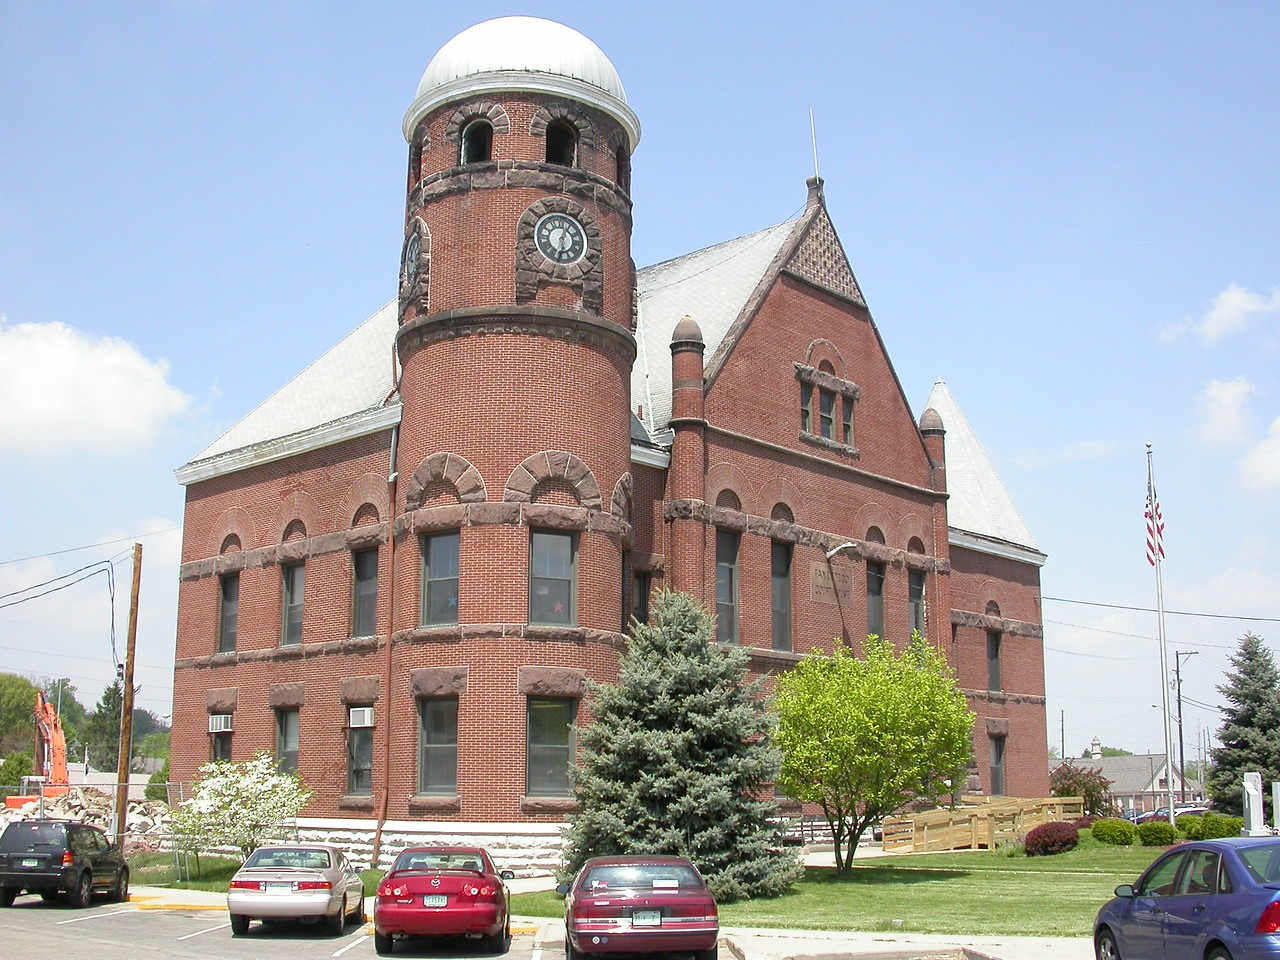 Fayette County Courthouse, Connersville, Indiana, May 2004.